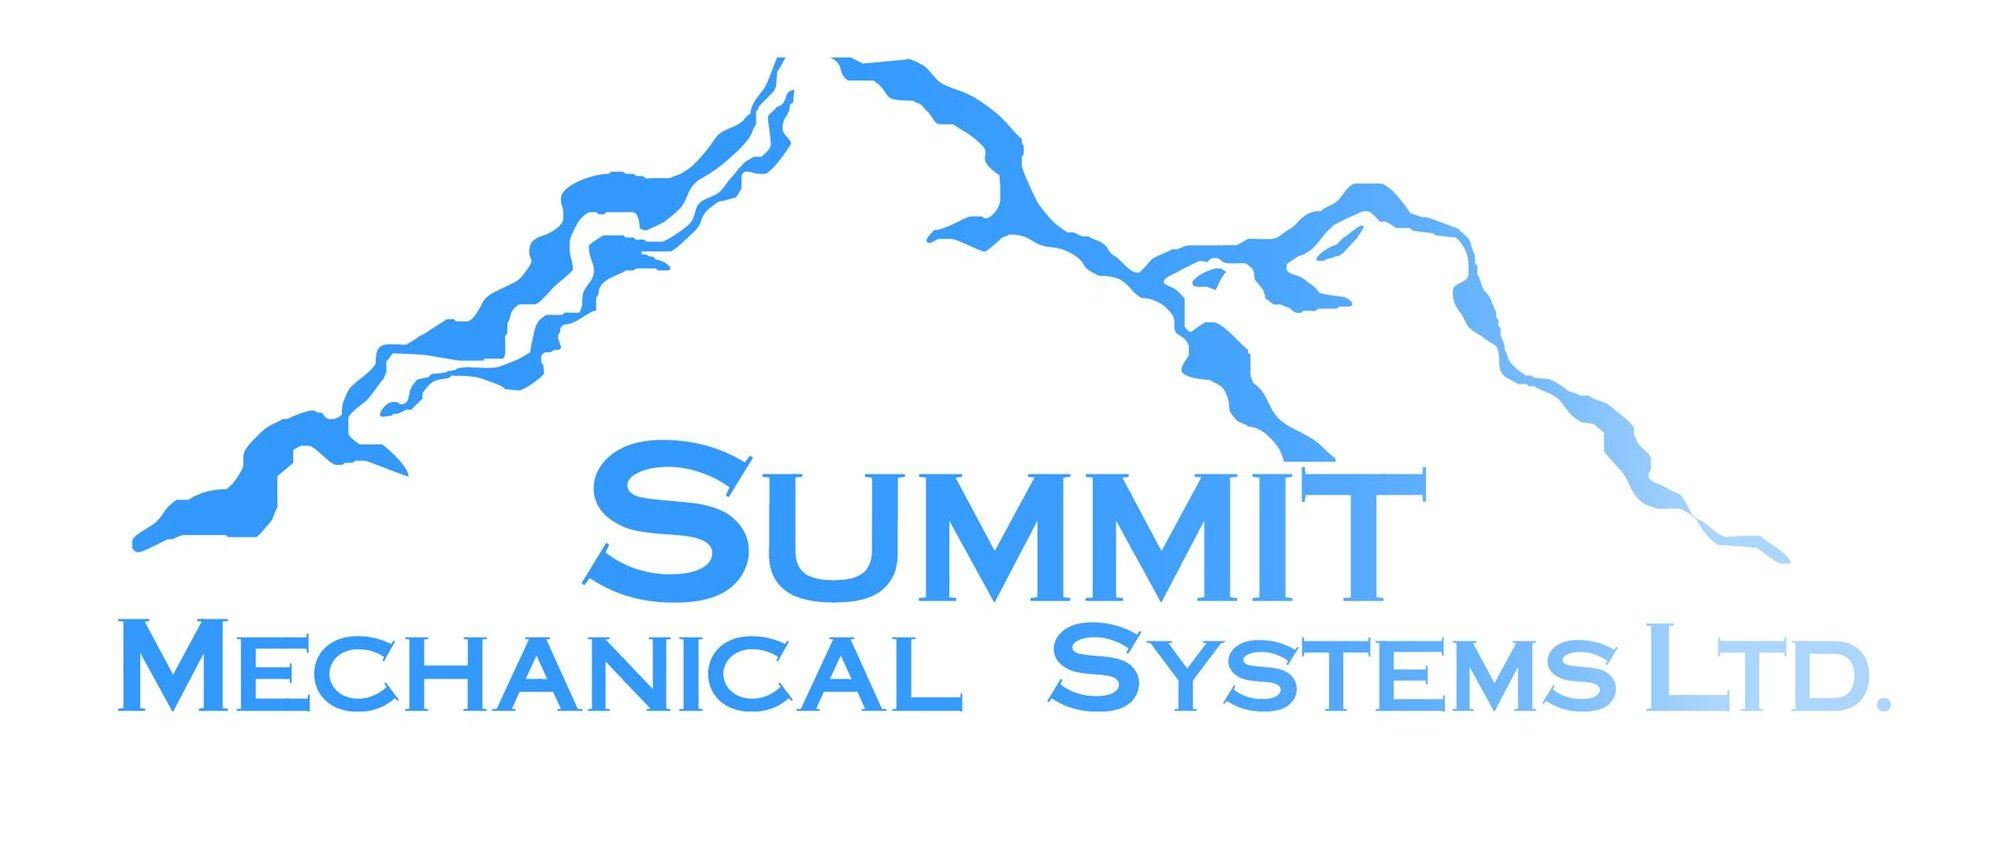 Summit Mechanical Systems